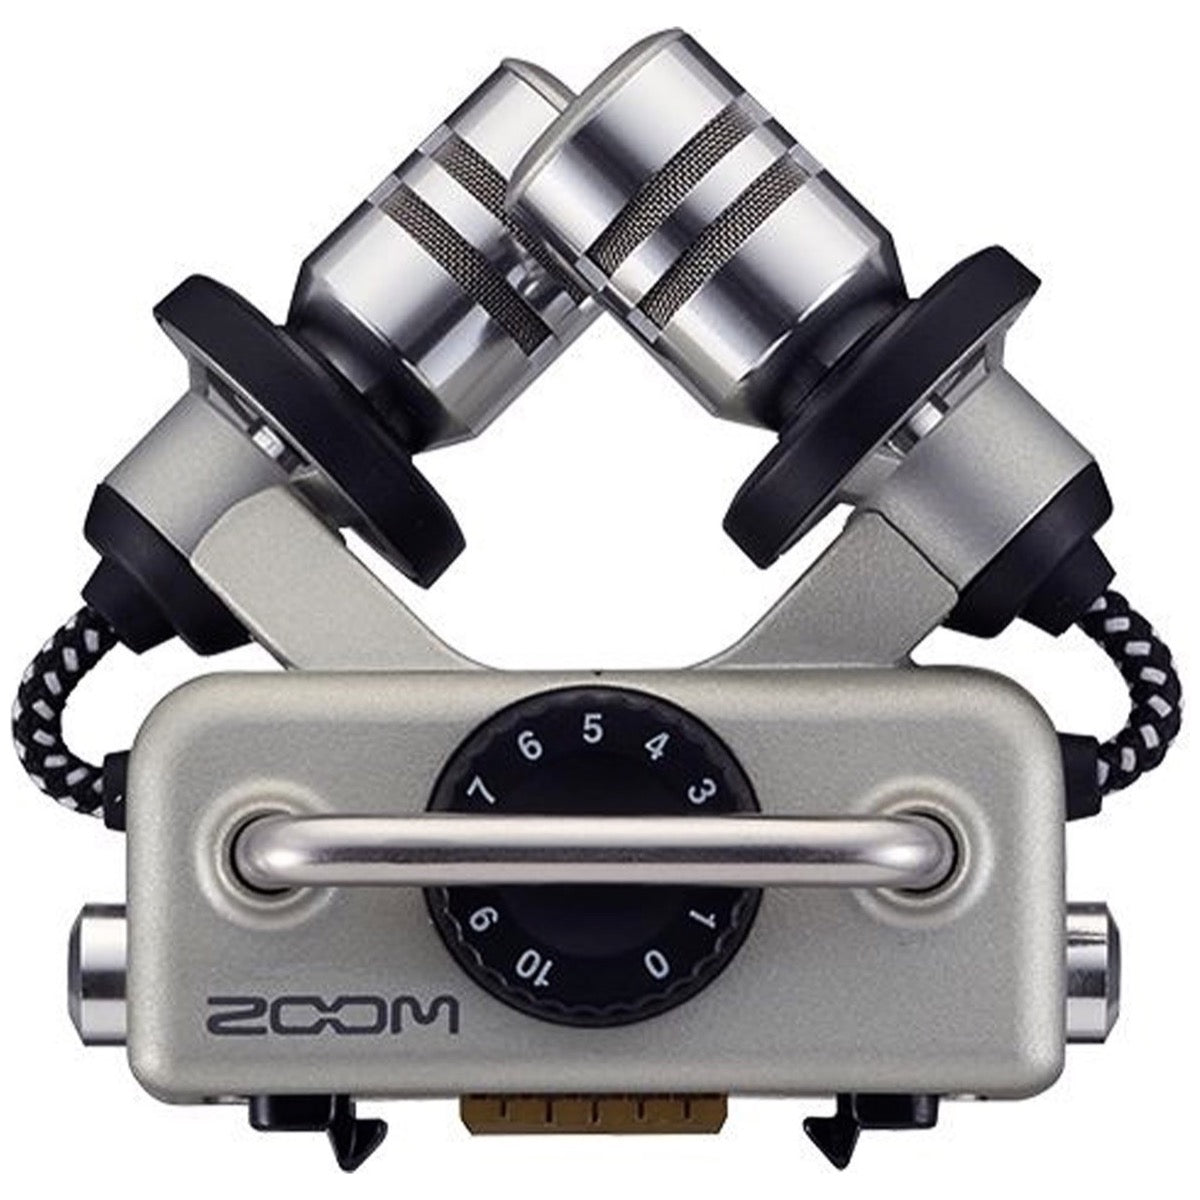 Zoom XYH-5 Shock-Mounted X-Y Stereo Microphone Capsule for H5 and H6 Recorders